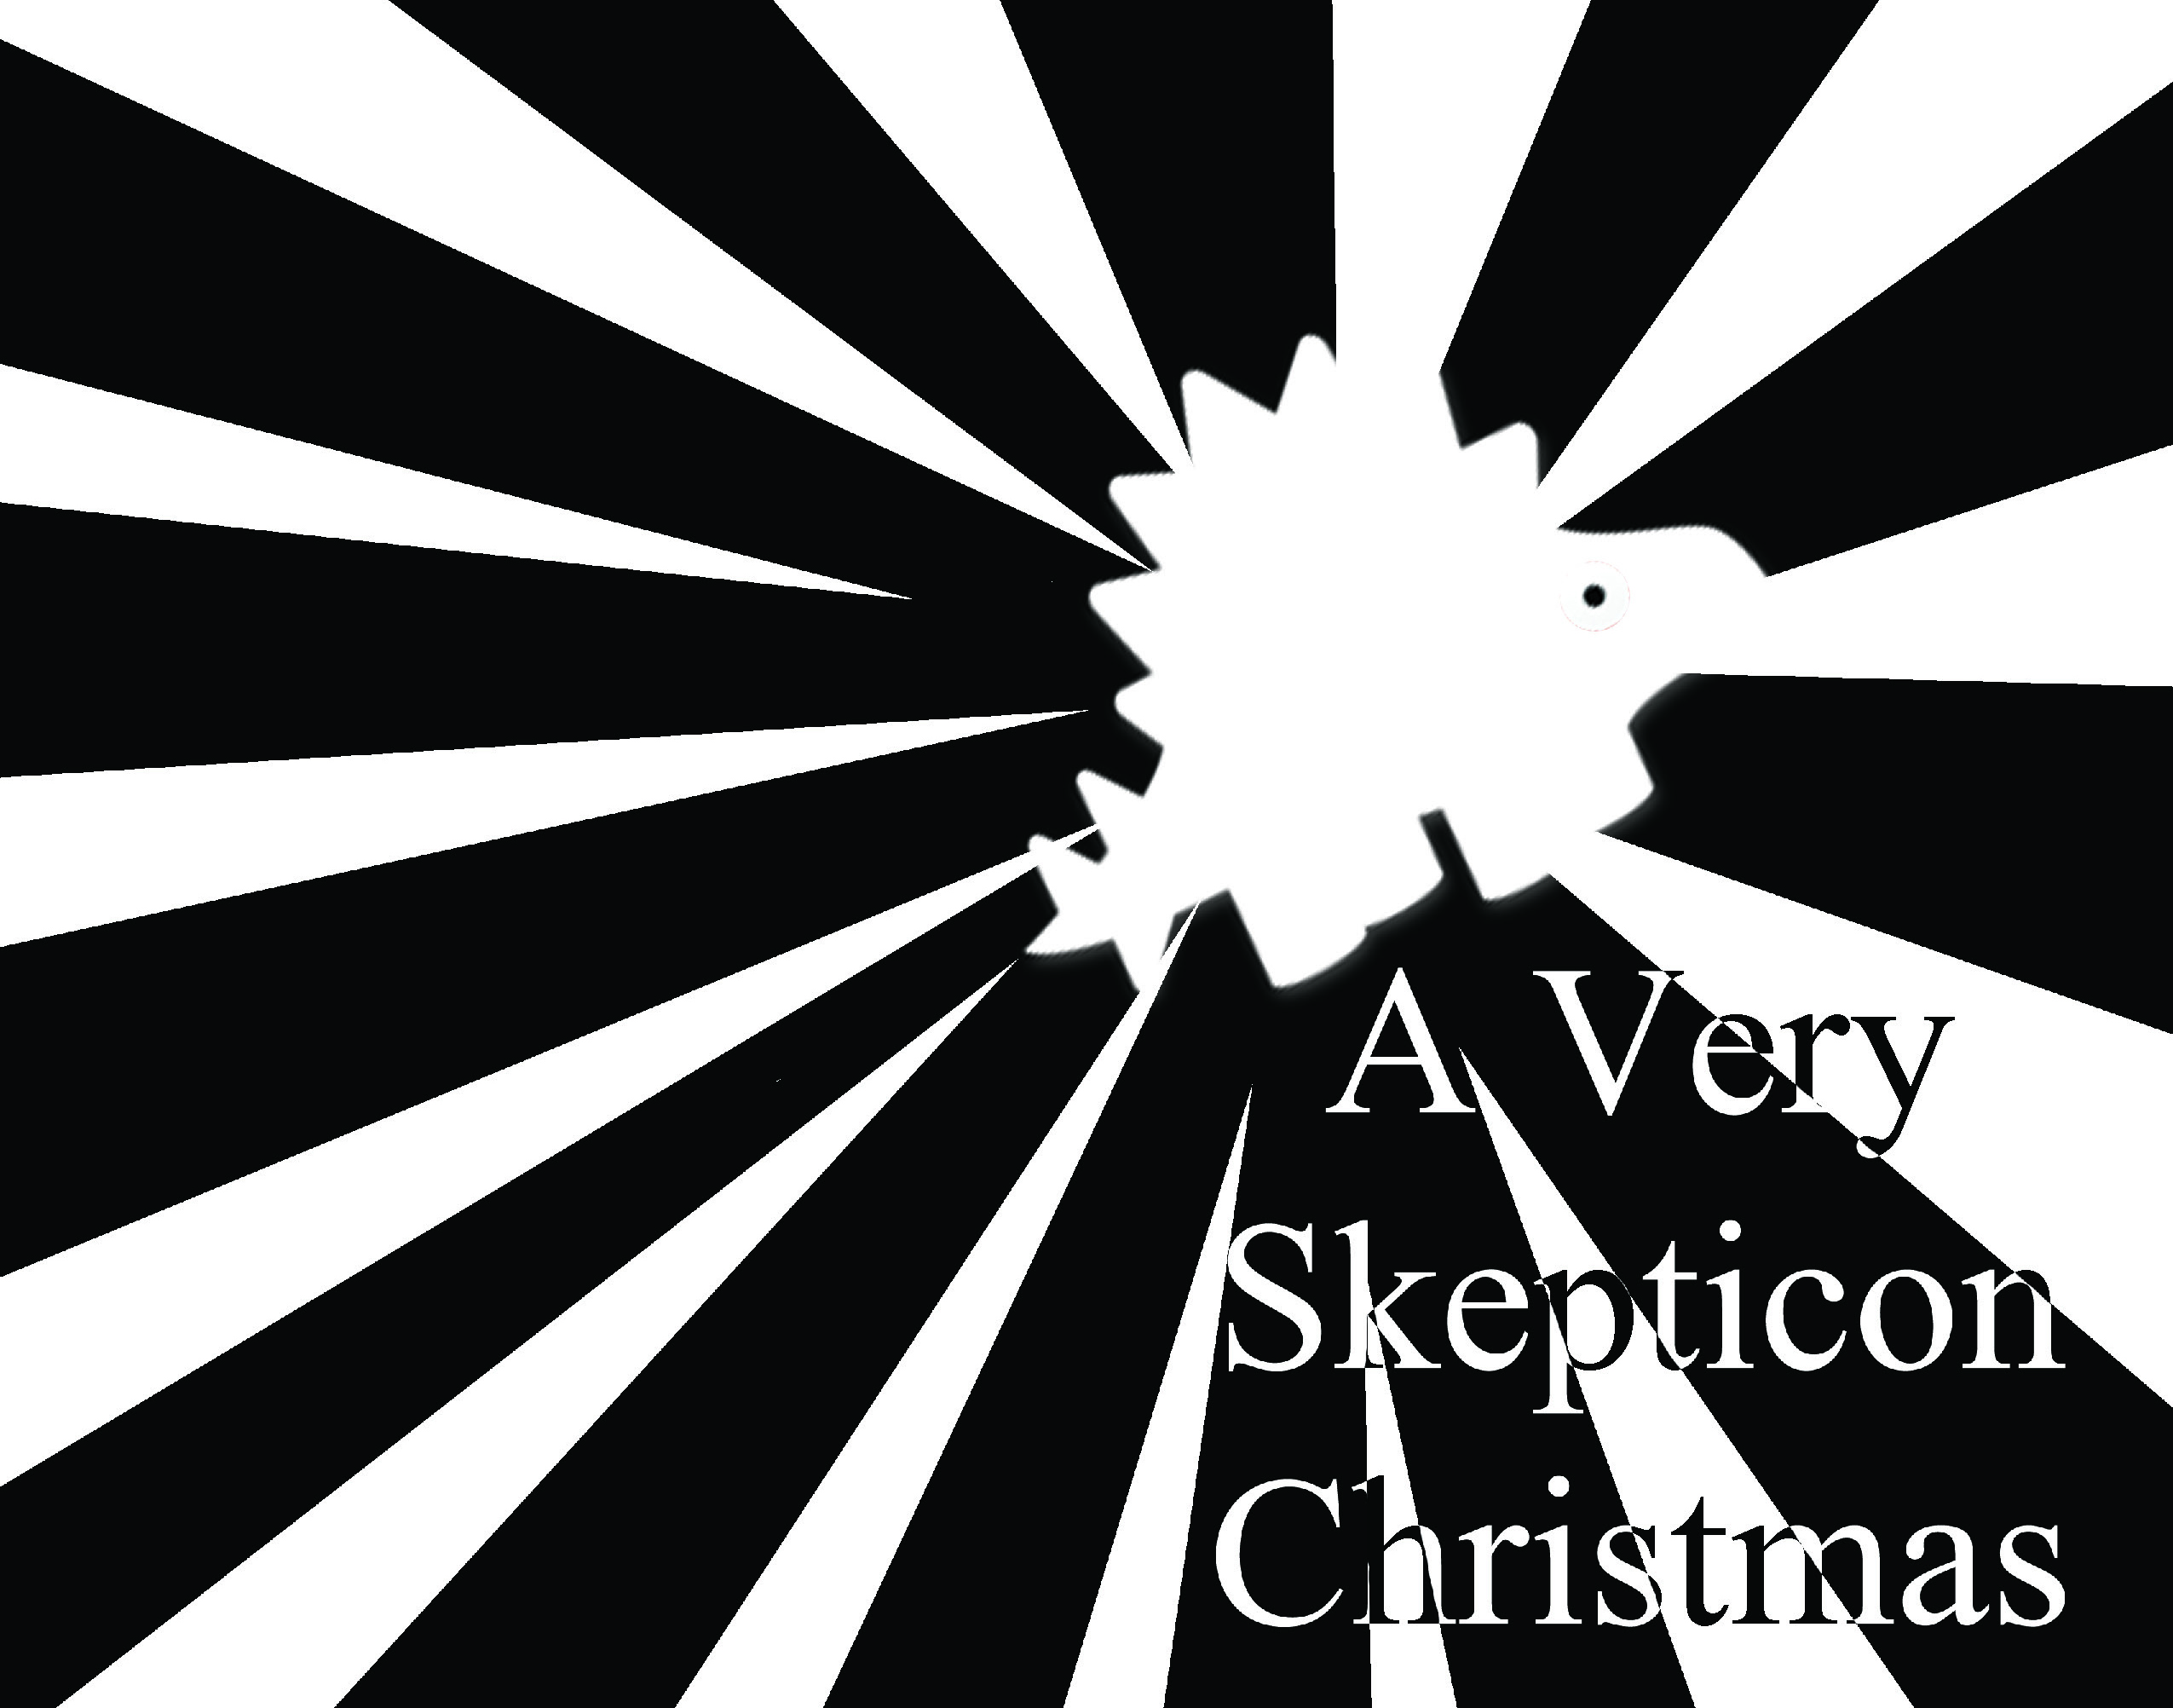 A Very Skepticon Christmas Released!